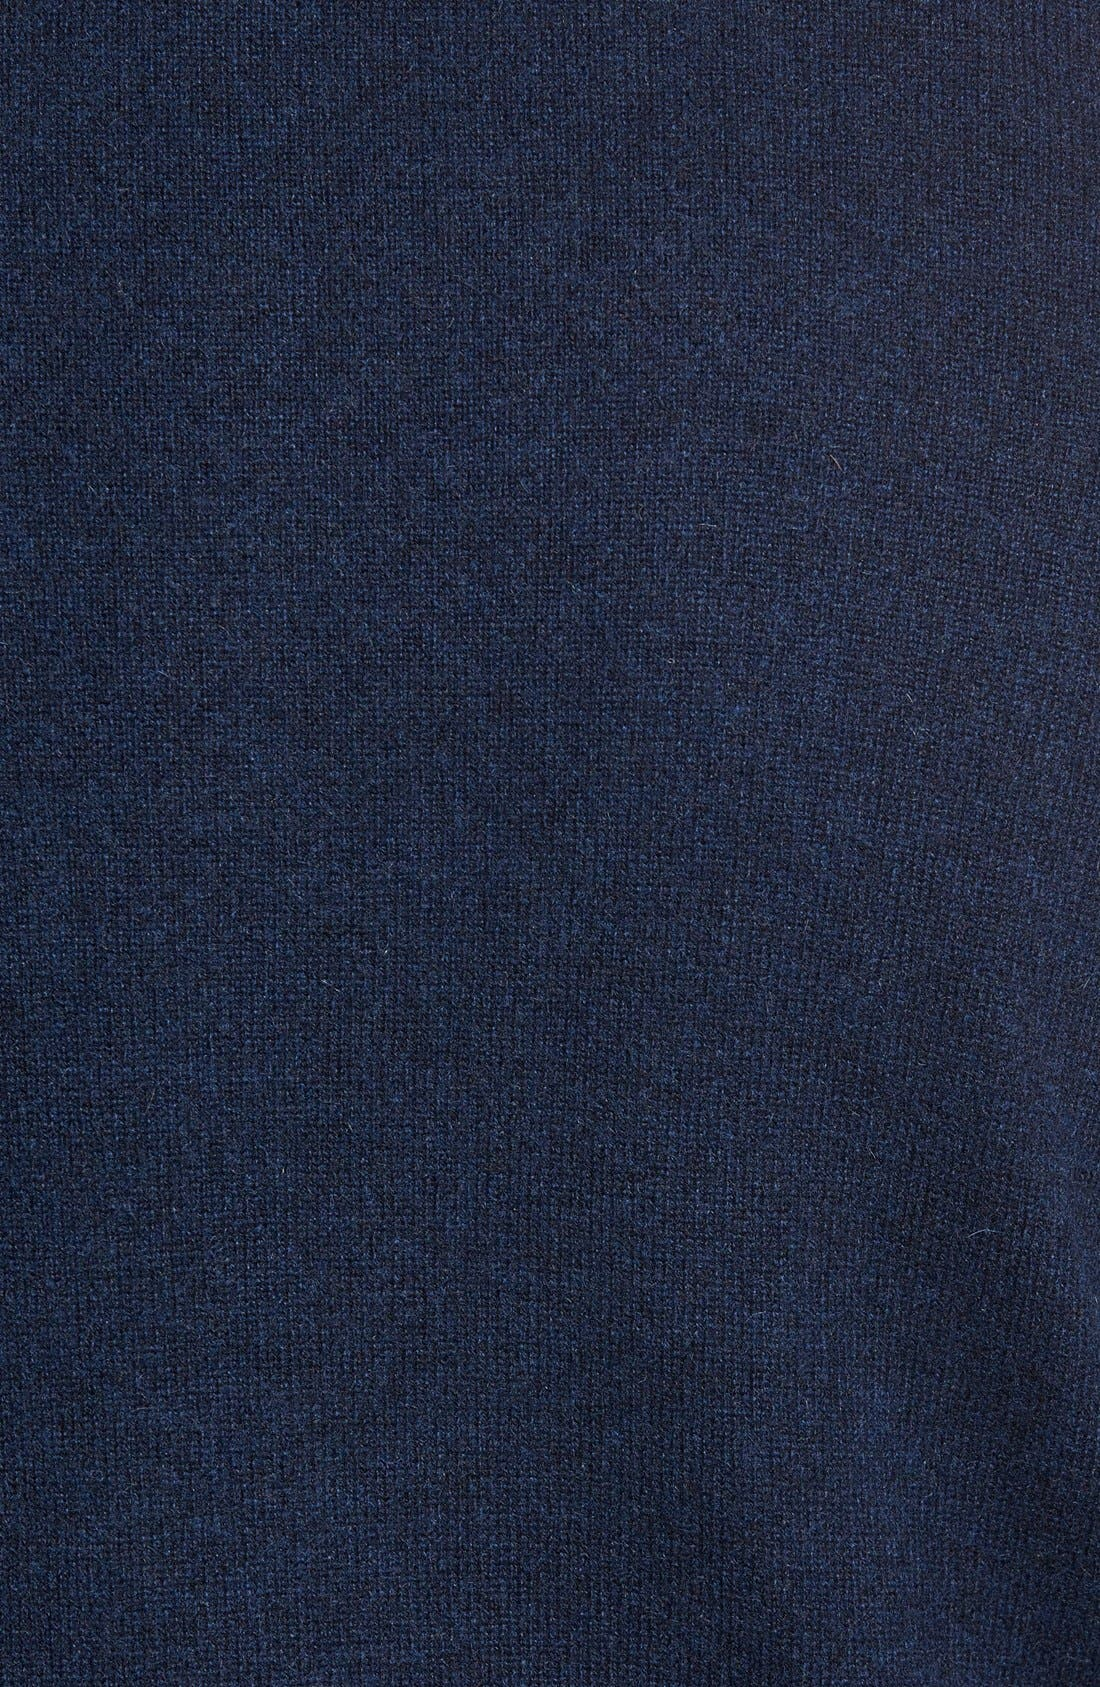 Quarter Zip Cashmere Sweater,                             Alternate thumbnail 5, color,                             Blue Estate Heather